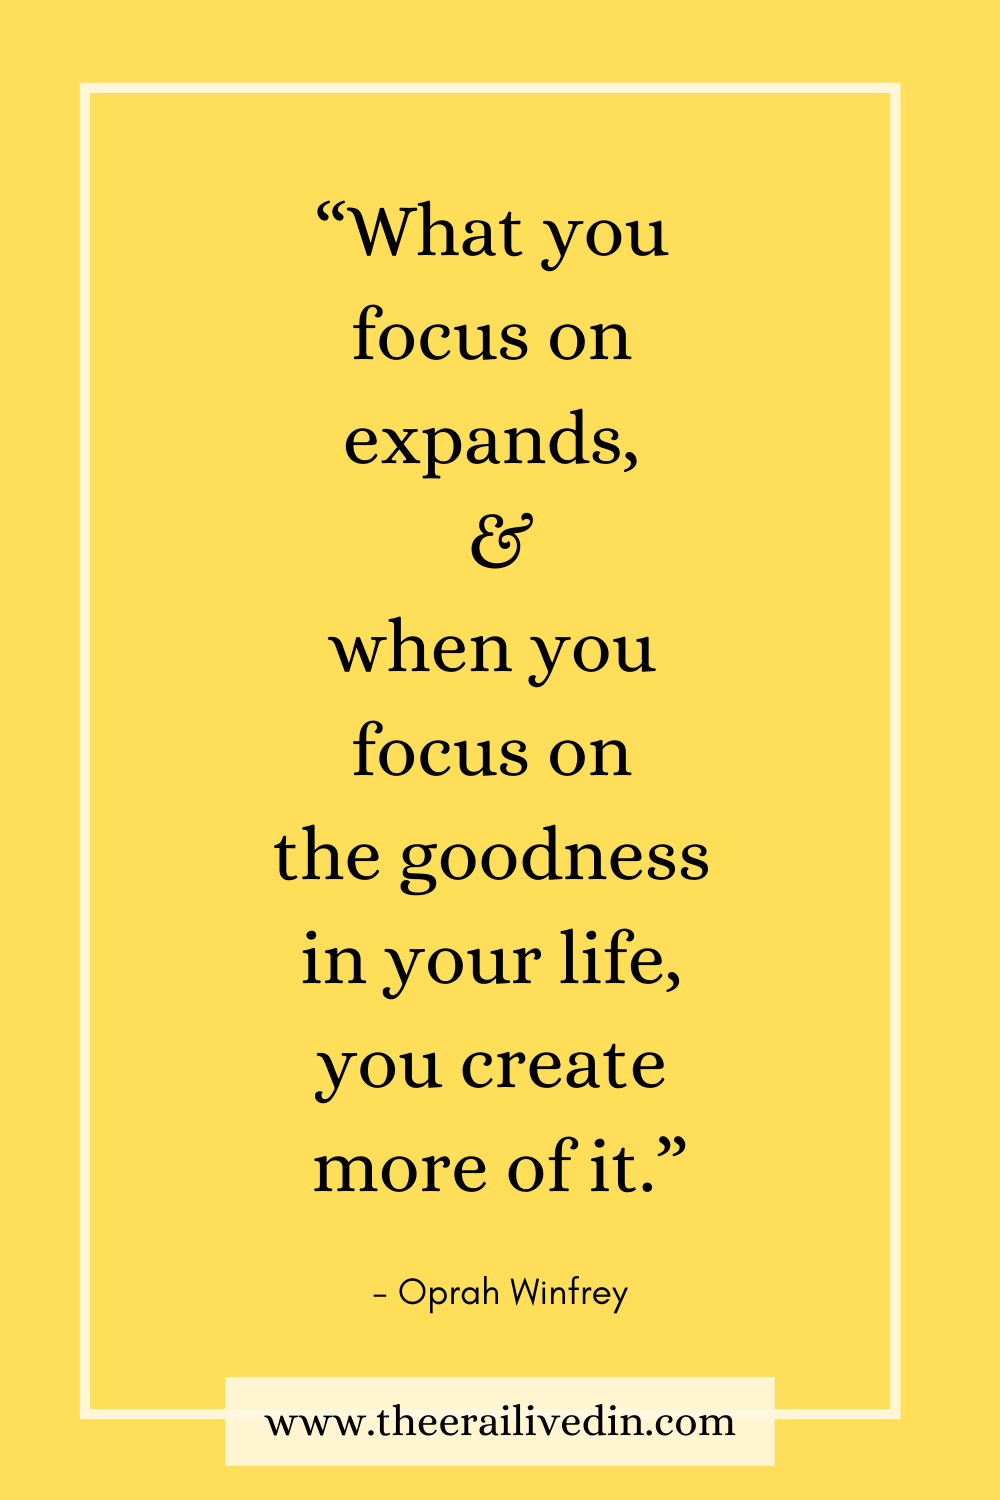 """""""What you focus on expands, and when you focus on the goodness in your life, you create more of it."""" #positivequotes #theerailivedin #quotestoliveby #OprahWinfreyQuotes"""